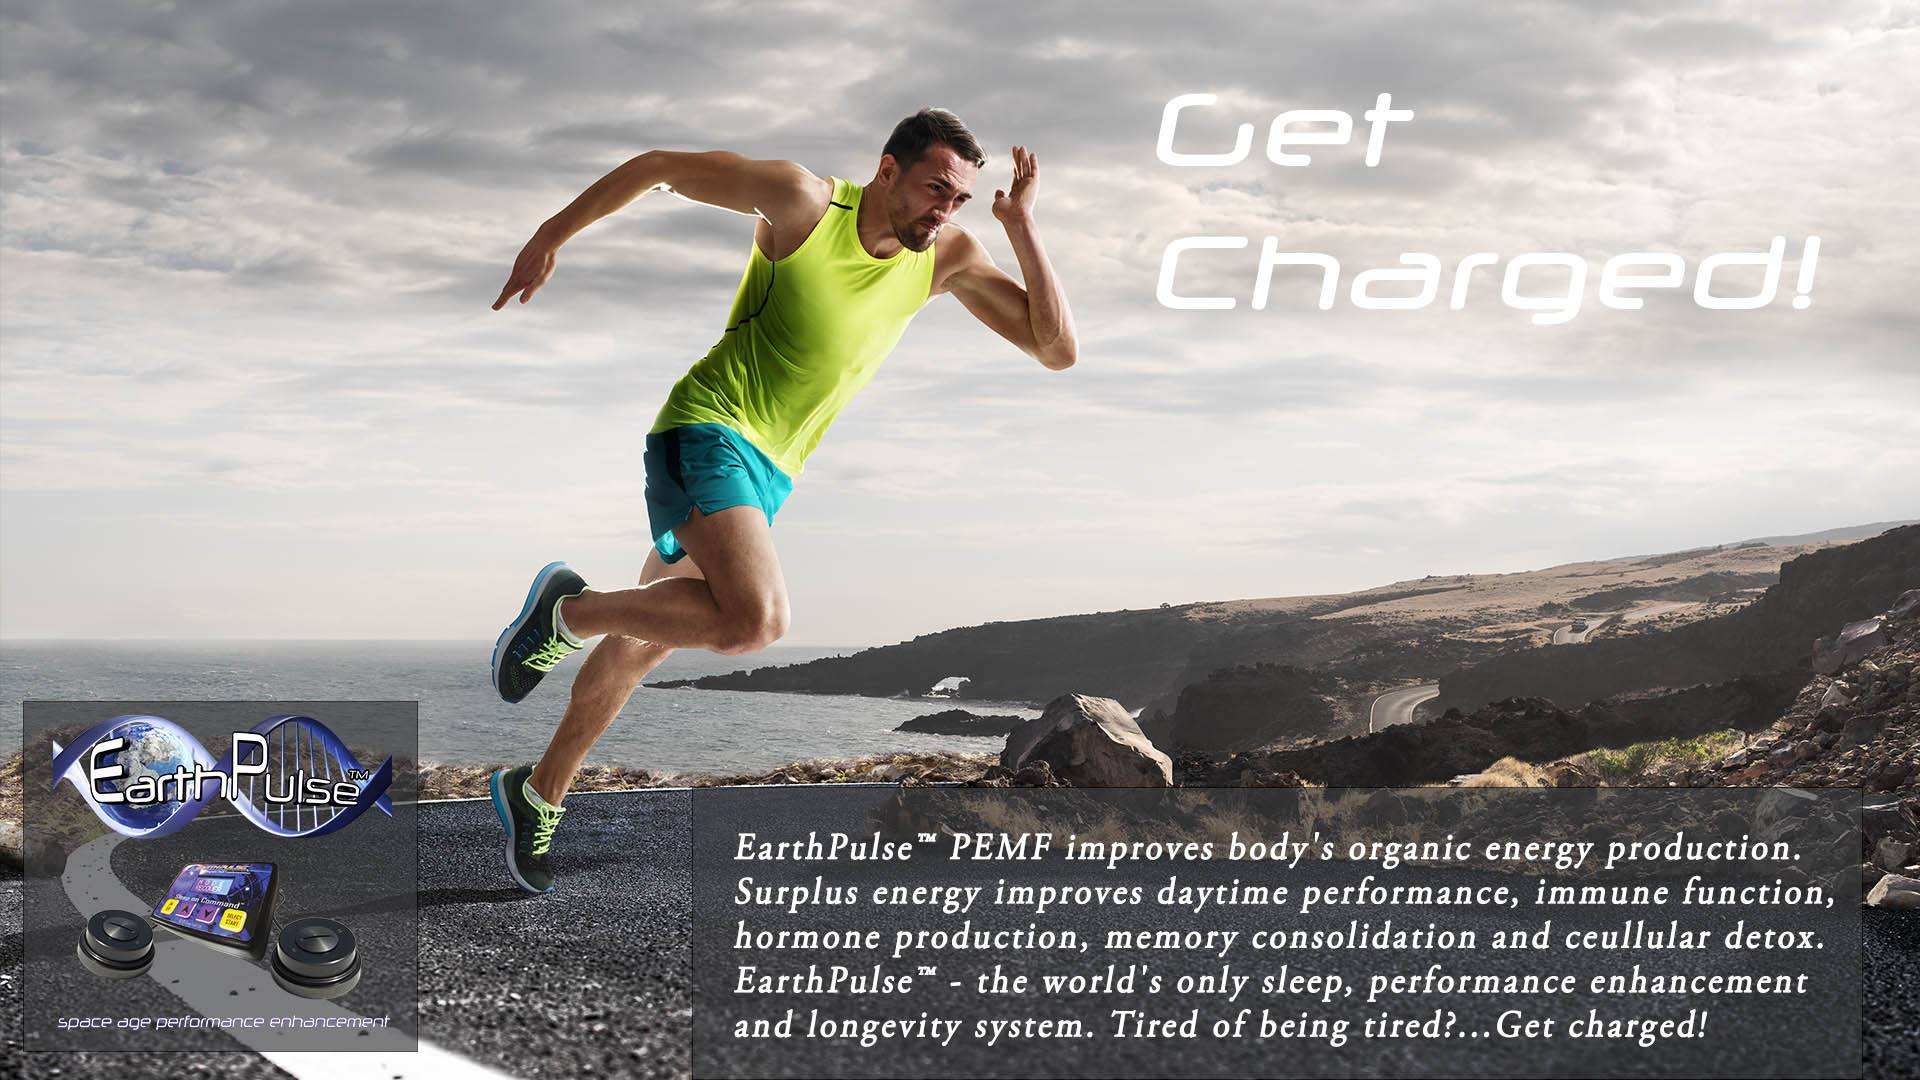 PEMF therapy for better sleep and Peak Athletic Performance